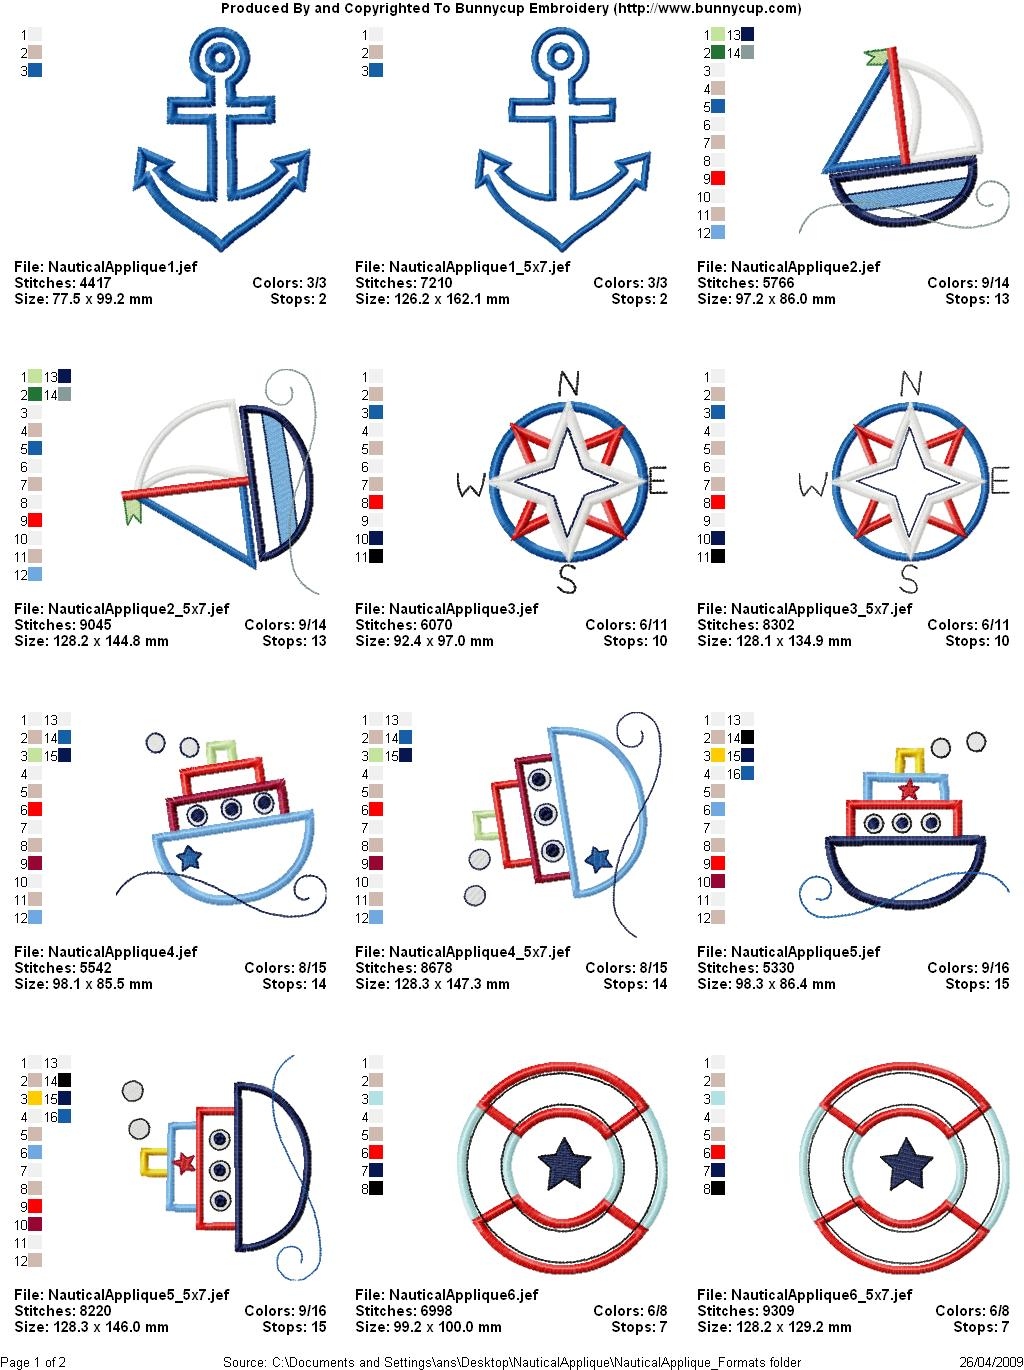 Nautical Embroidery Patterns Nautical Applique Applique Embroidery Designs Bunnycup Embroidery